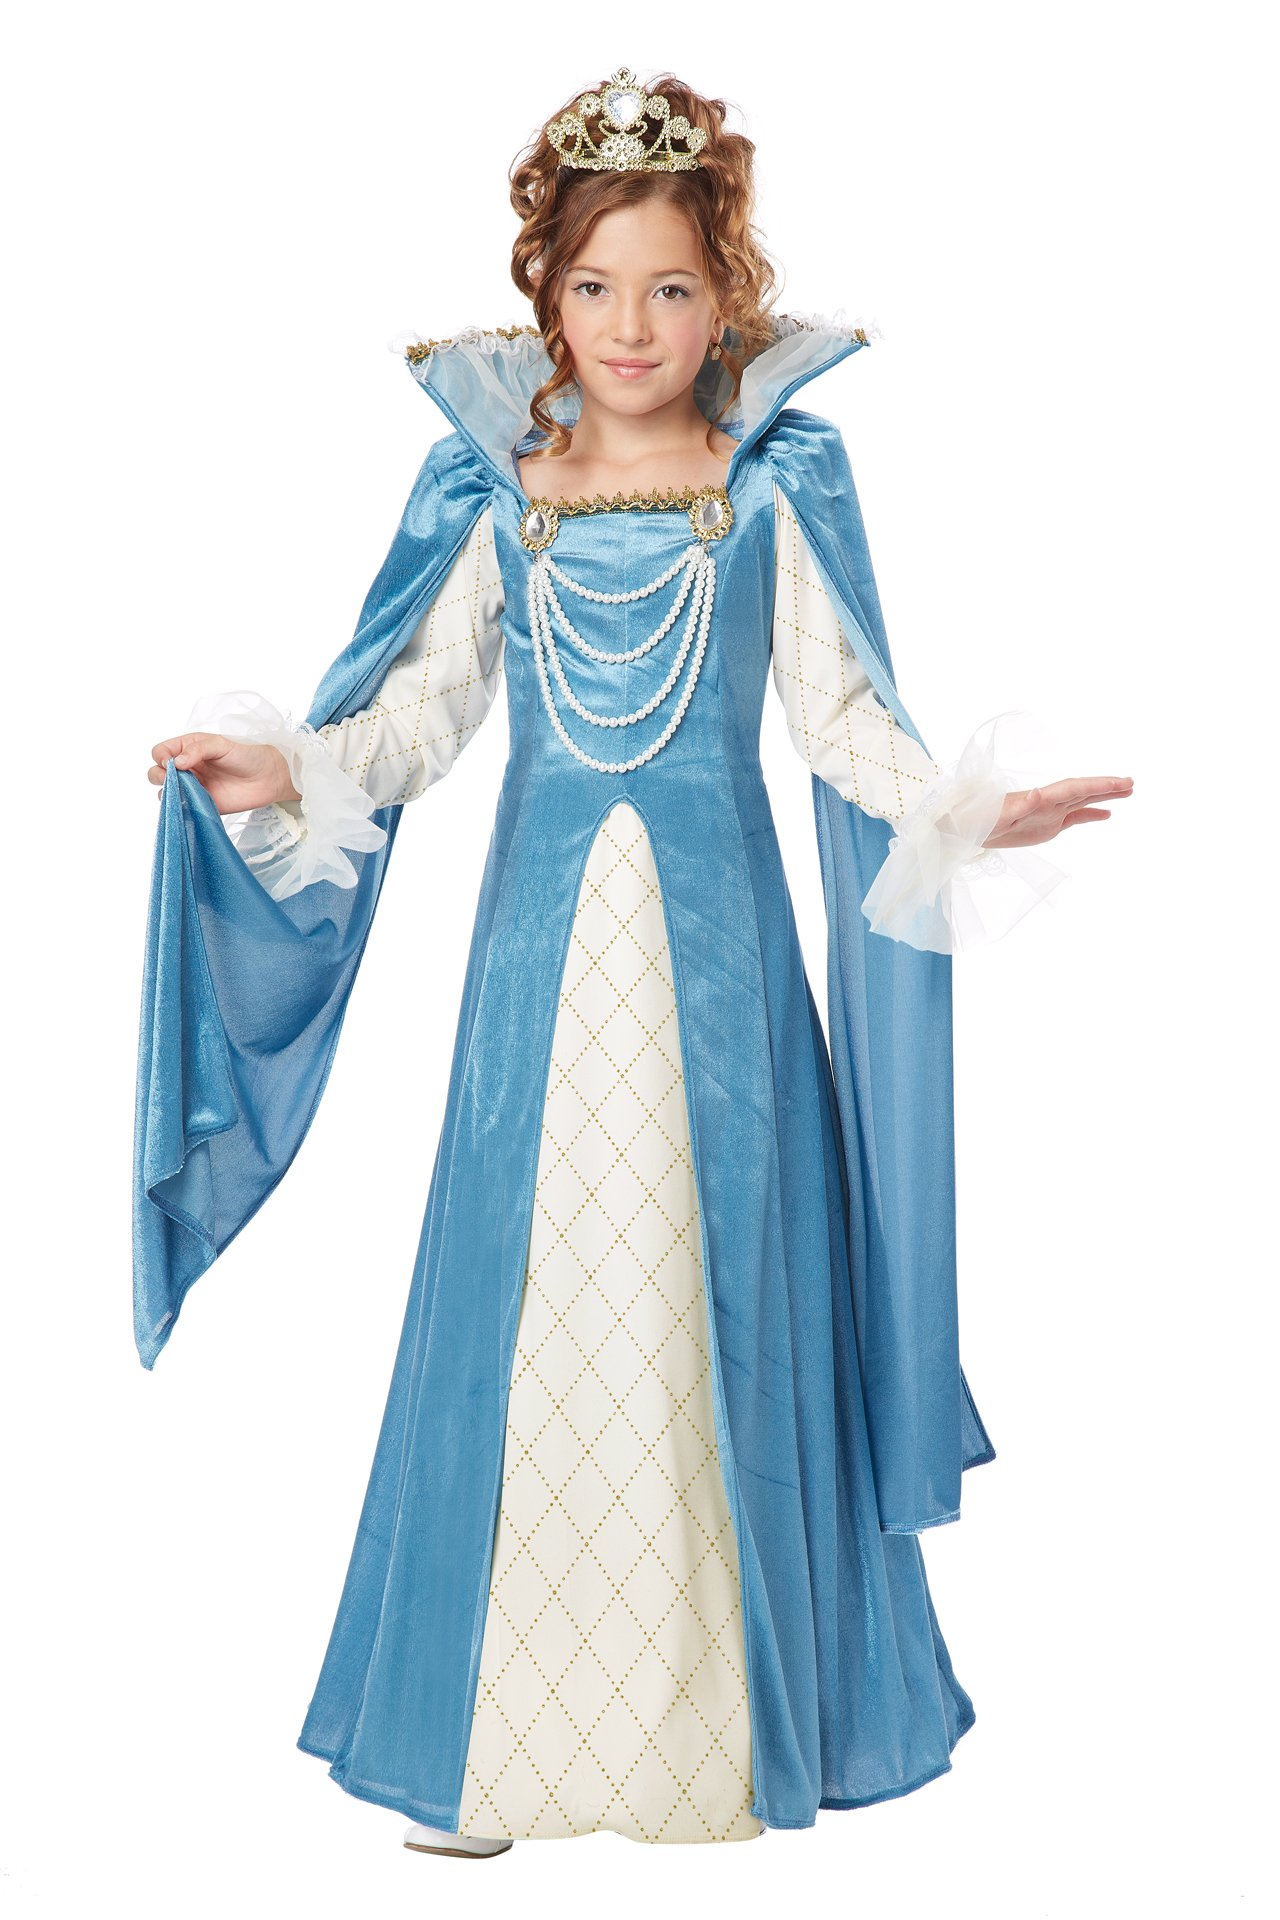 California Costumes Renaissance Queen Child Costume, Small by California Costumes